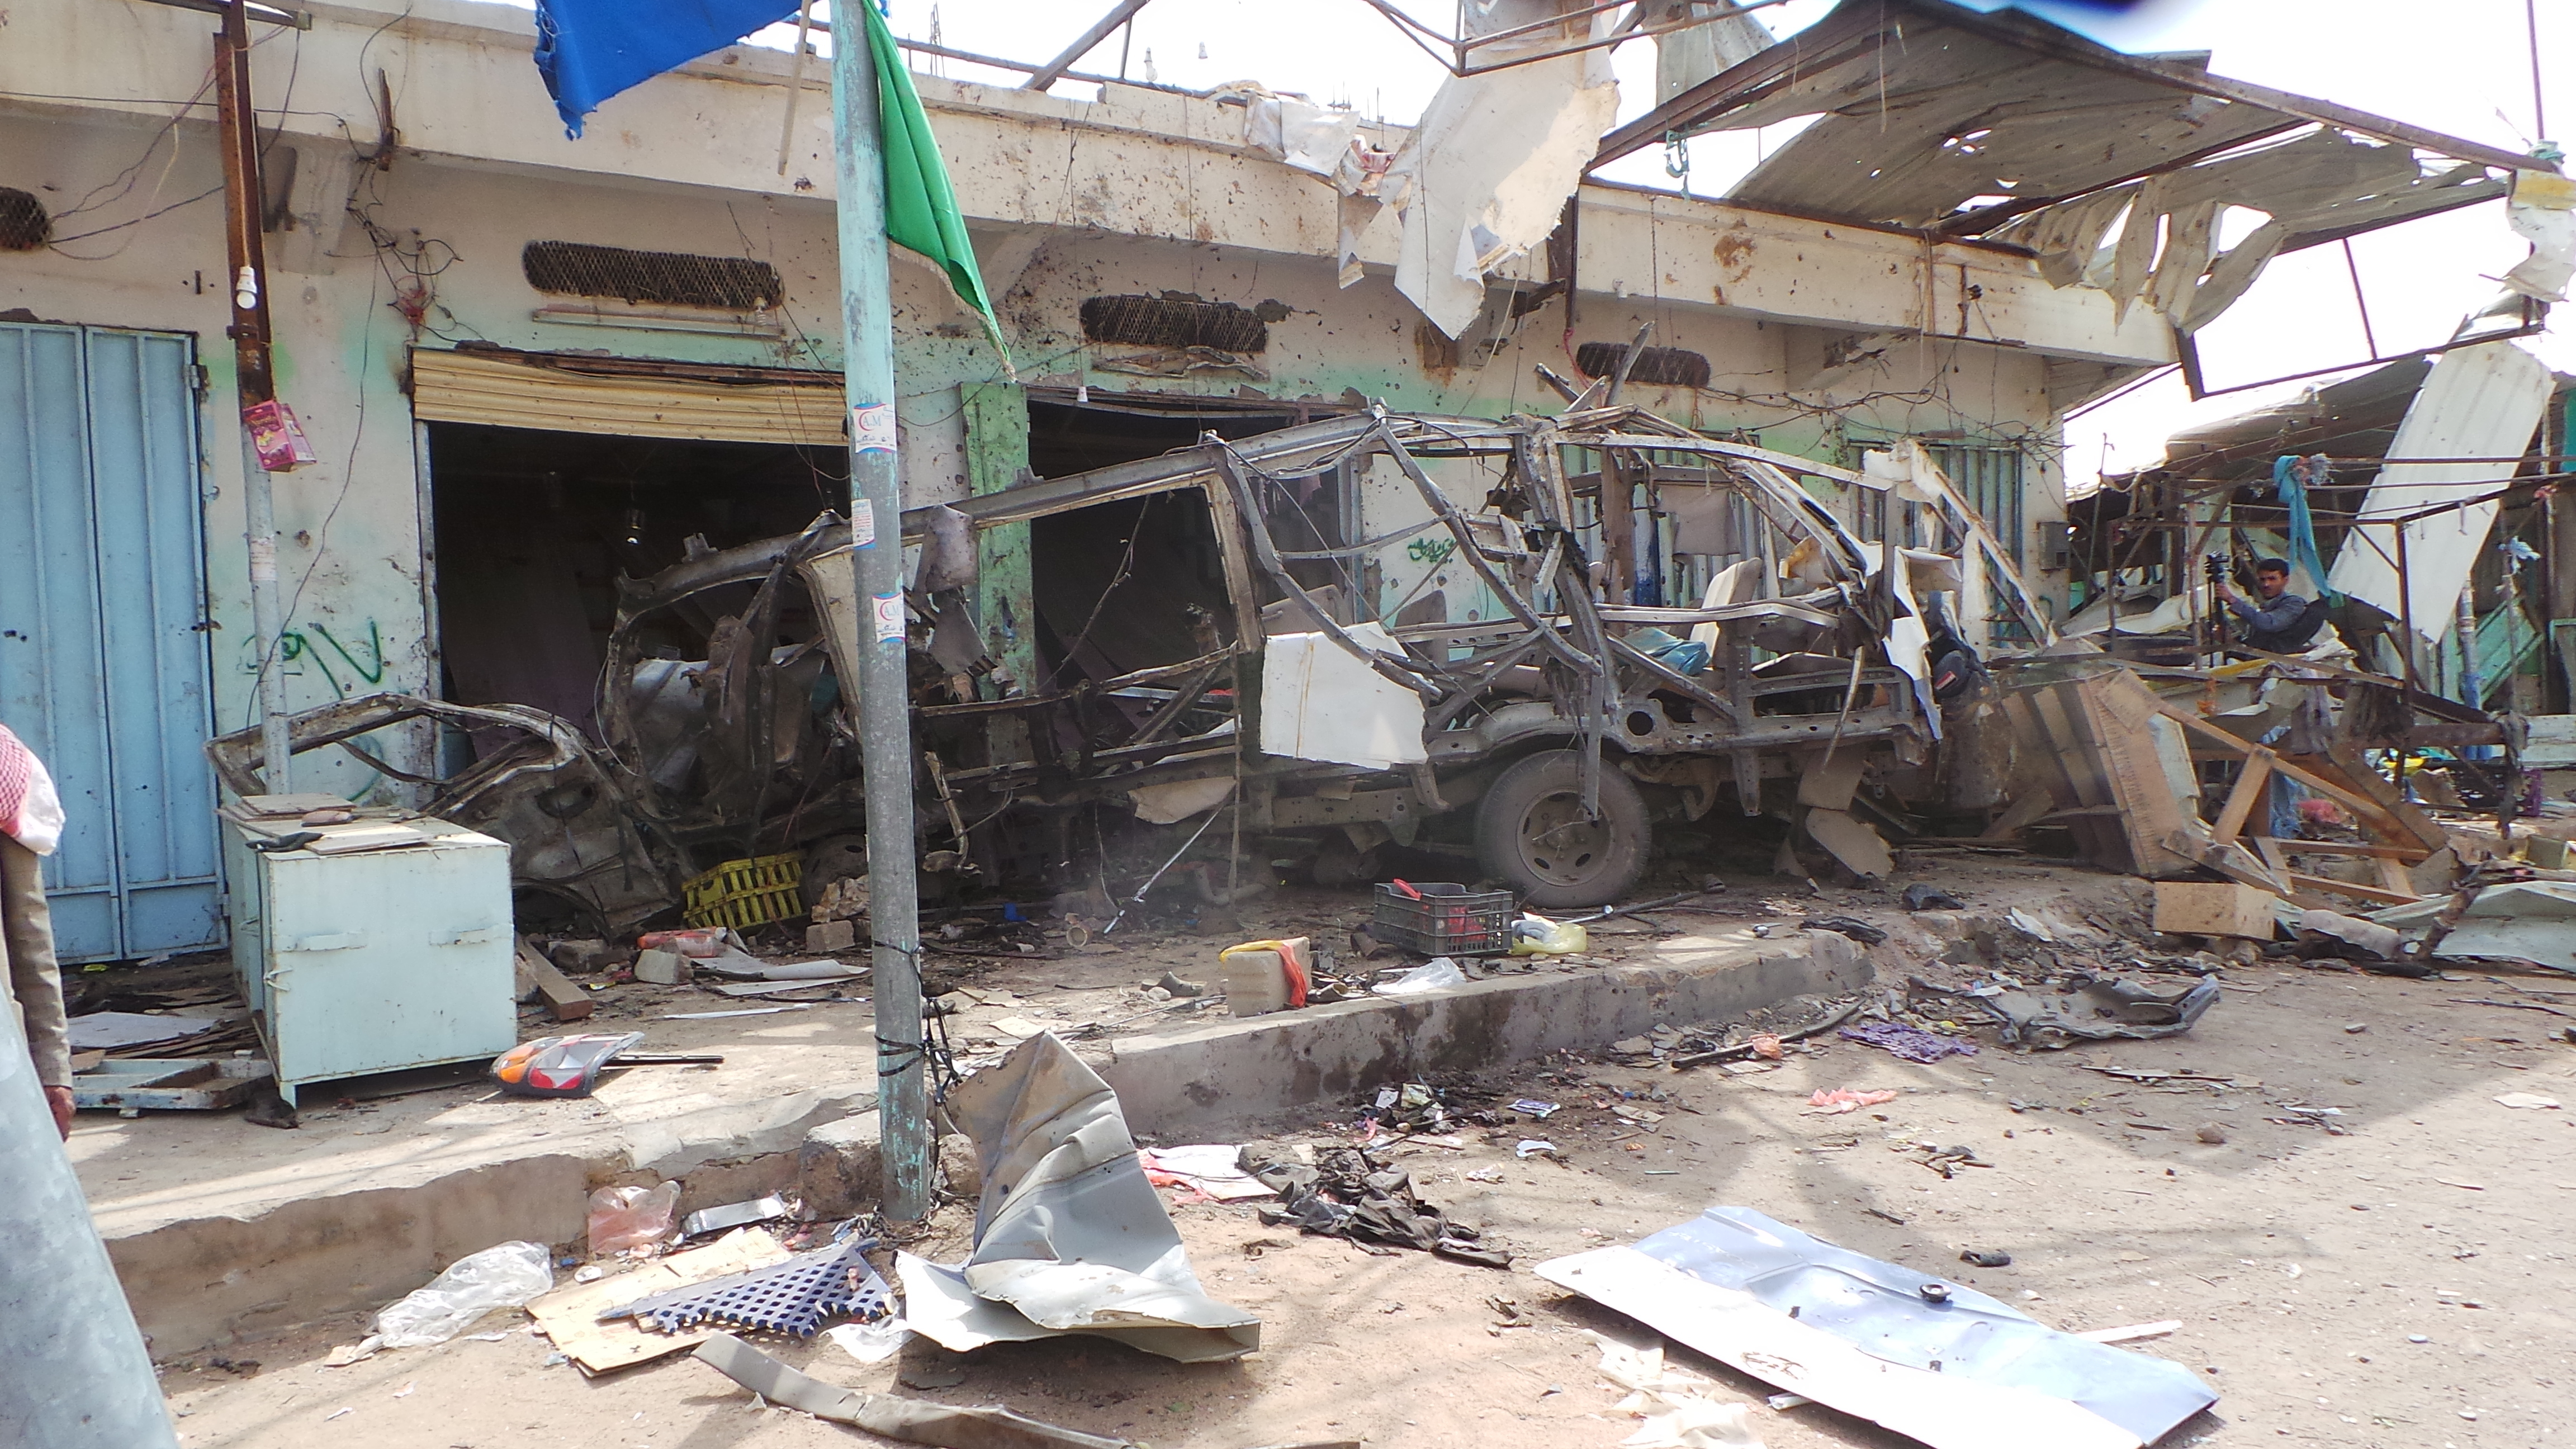 The wreckage of a bus remains at the site of an airstrike in Saada, Yemen, on Aug. 10, 2018. Yemen's Shiite rebels are backing a United Nations' call for an investigation into a Saudi-led coalition airstrike in the country's north that killed dozens ...